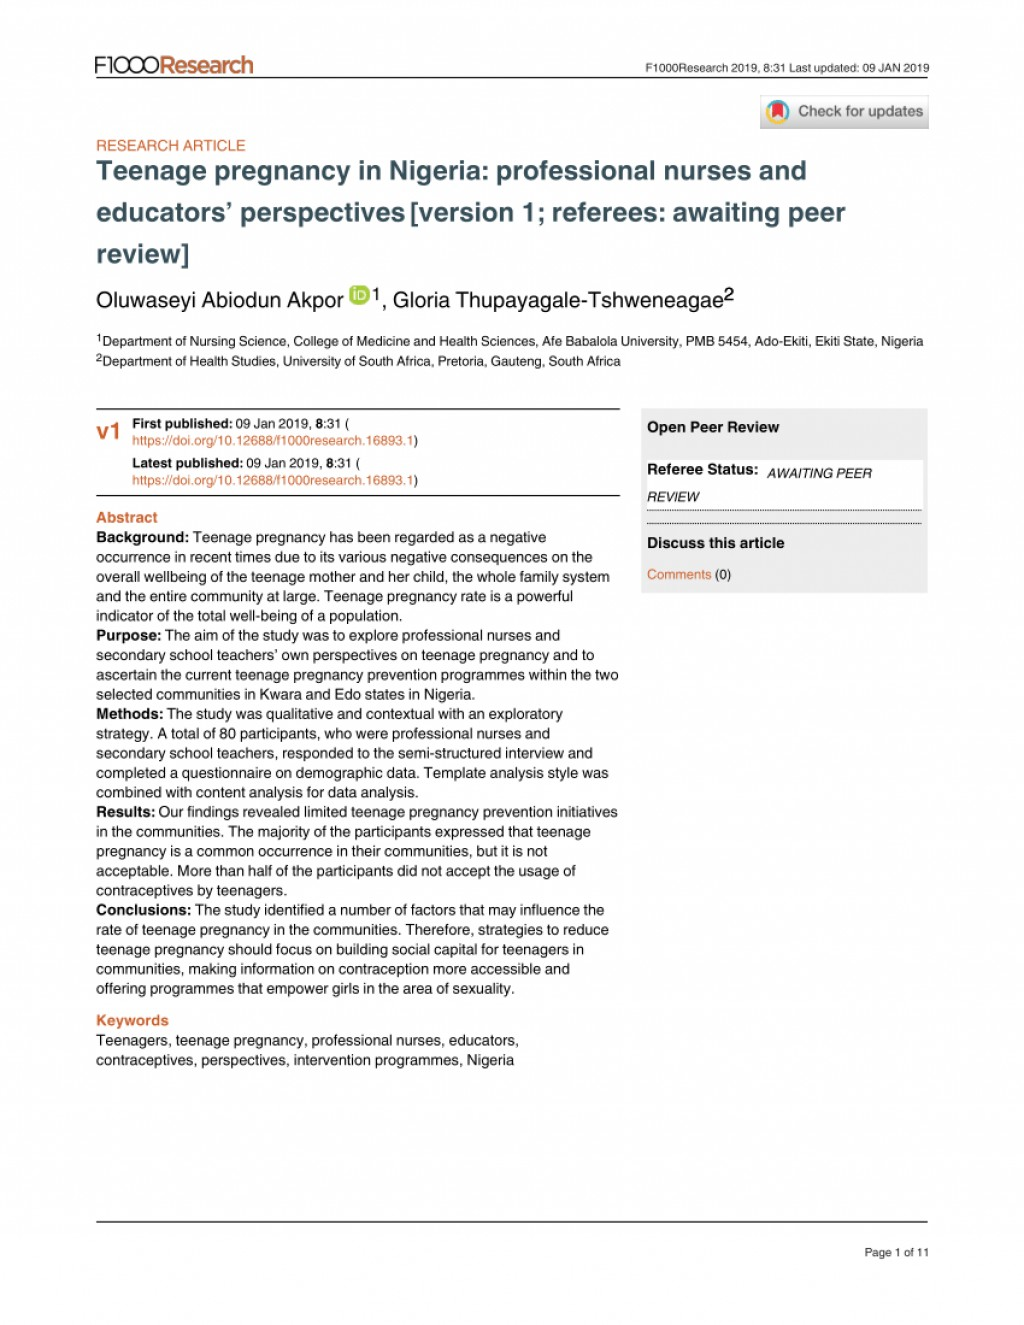 013 Nursing Research Articles On Teenage Pregnancy Paper Unusual Large